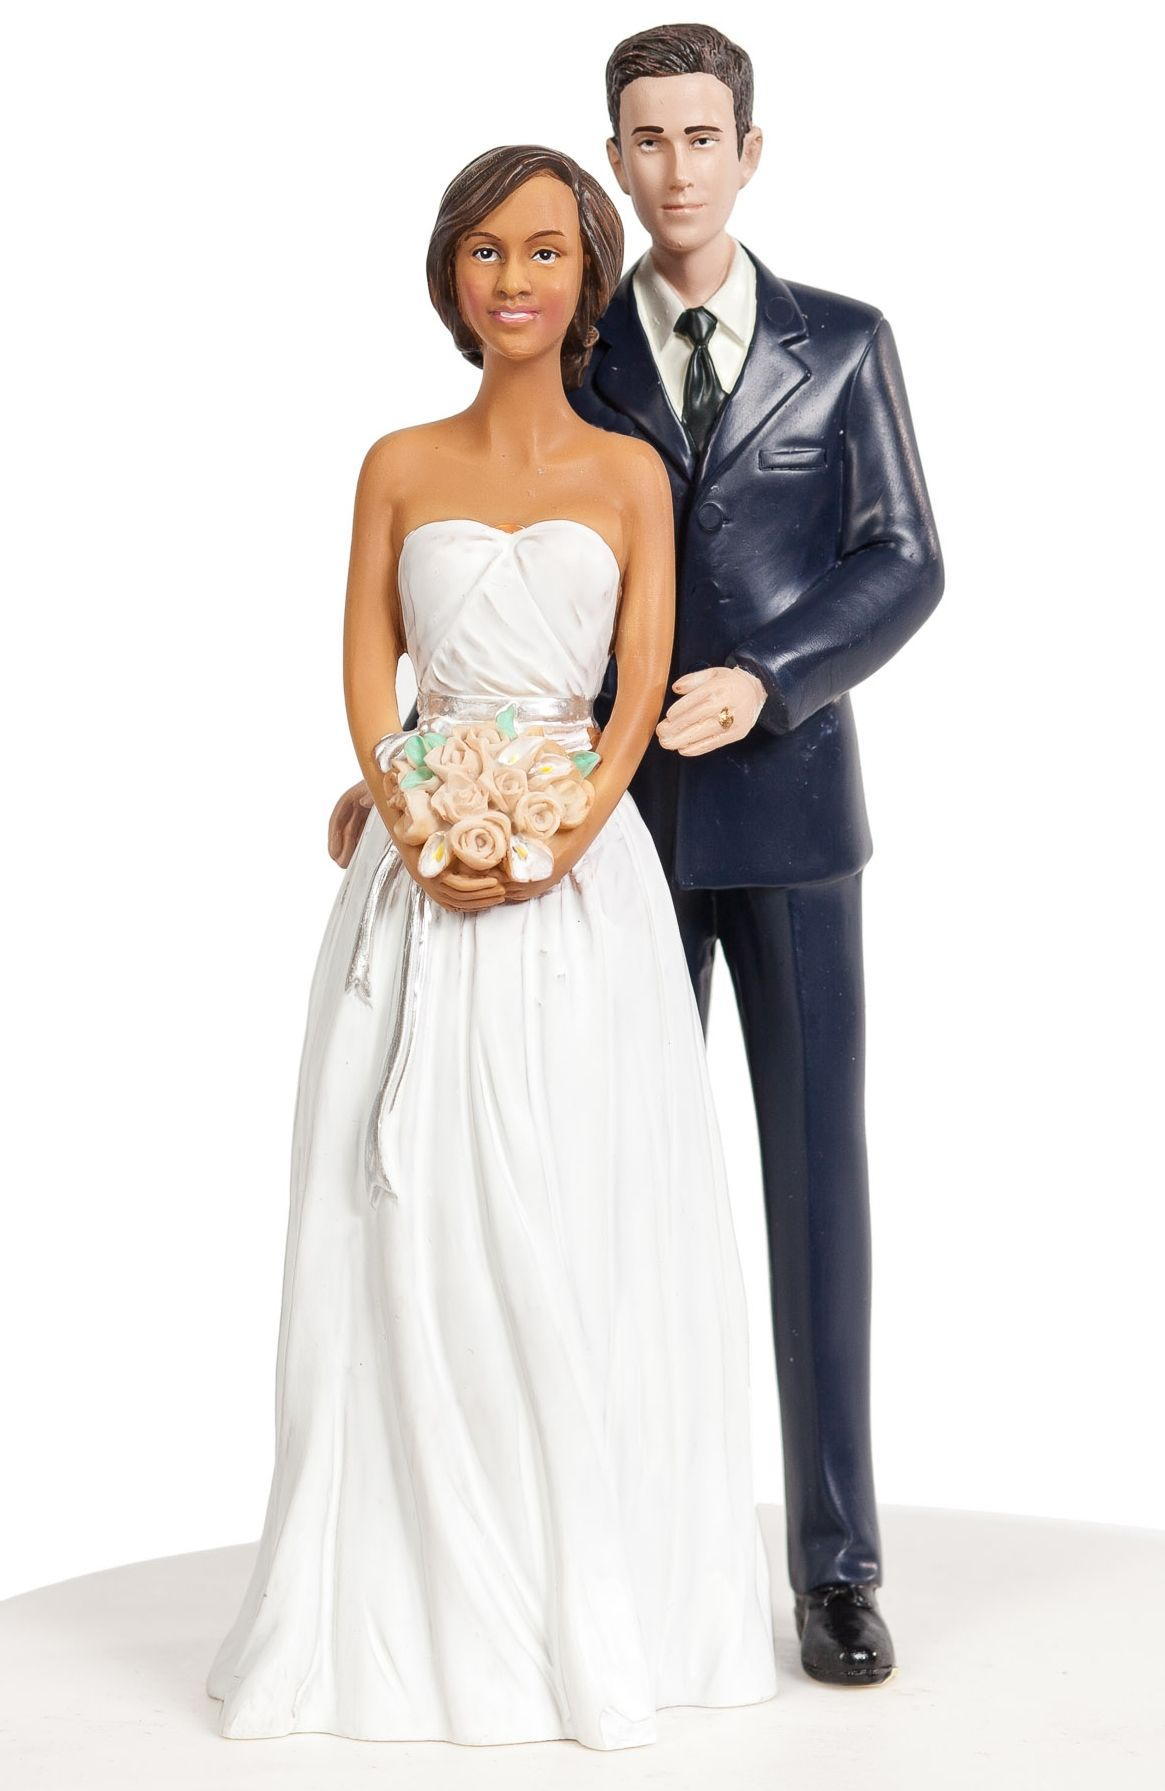 nude-wedding-cake-toppers-for-interracial-marriages-little